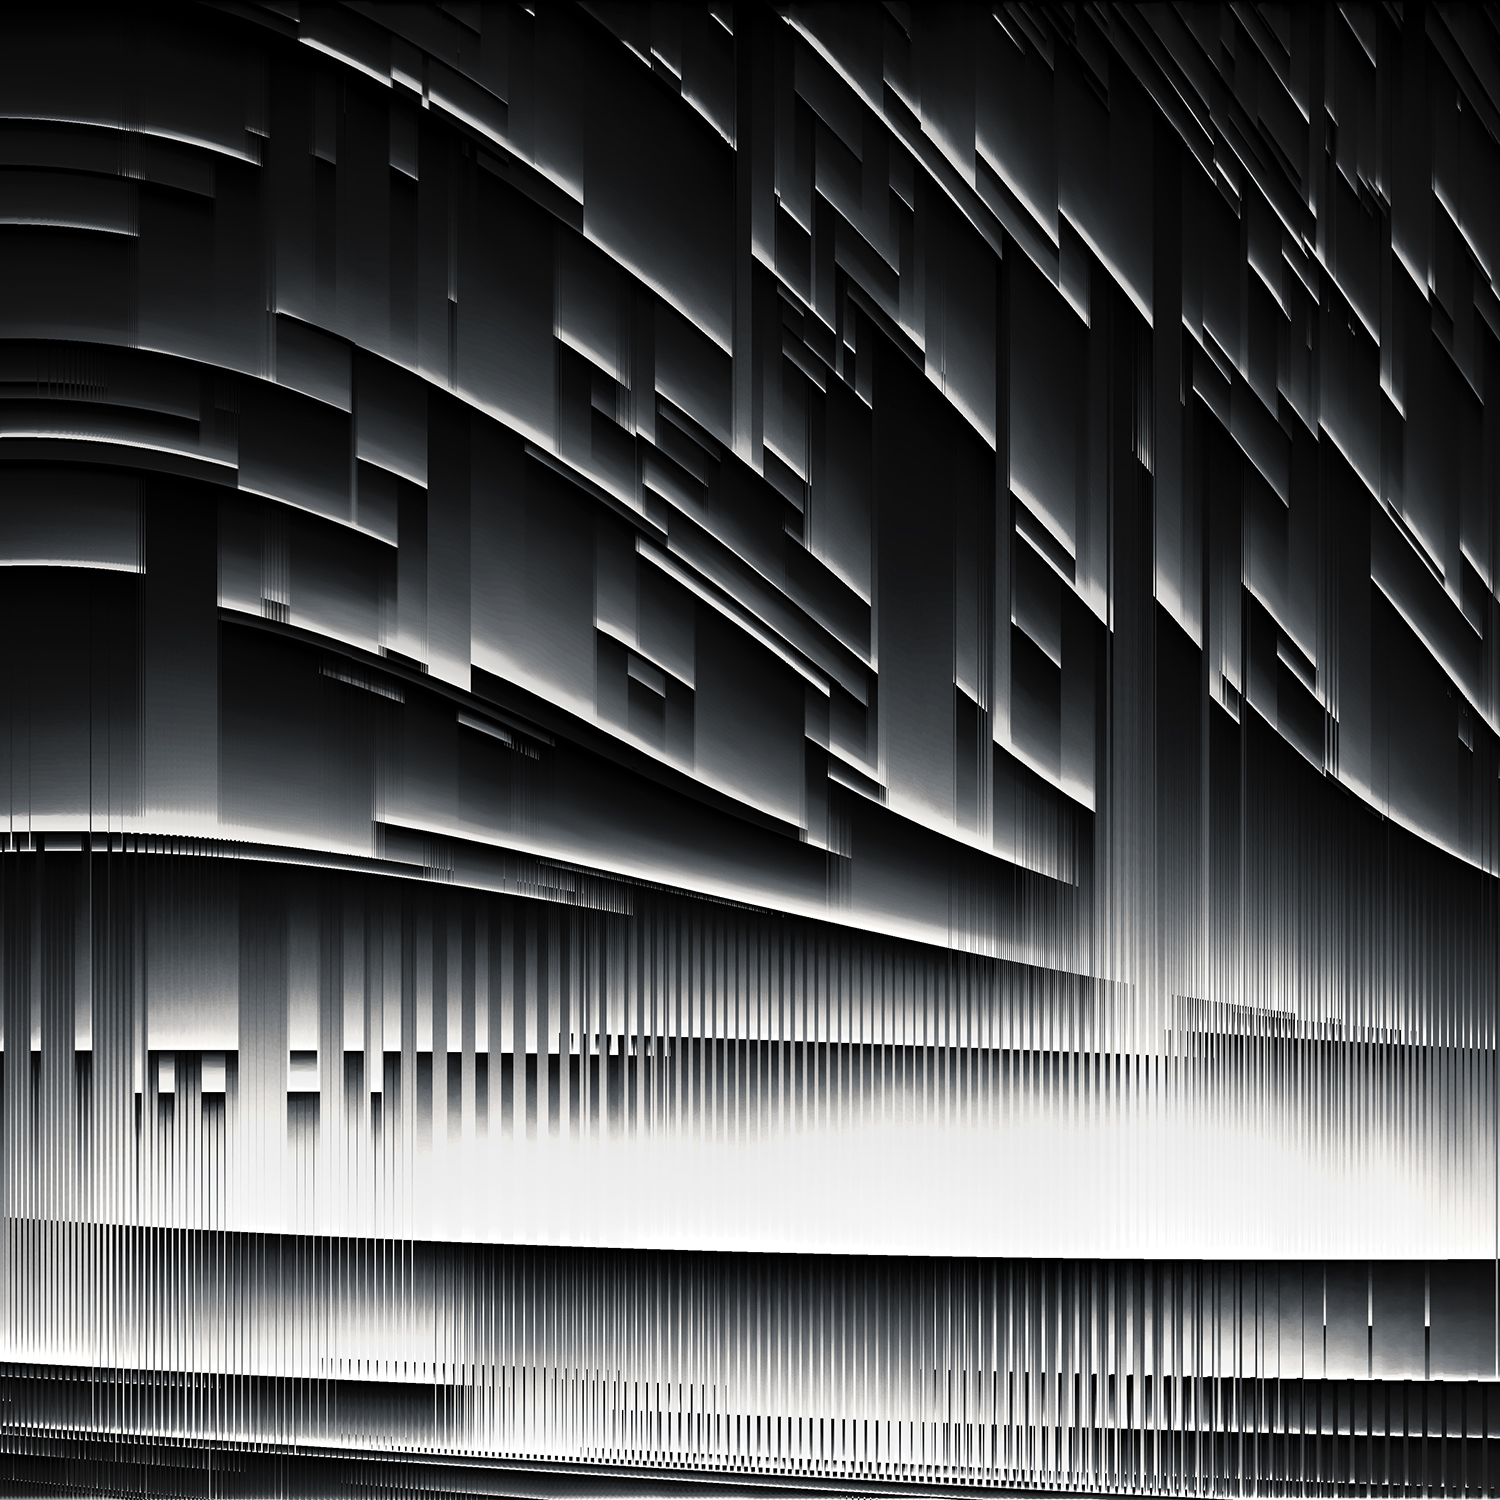 Evolving from the resonate forces left behind from LO 1.0, a geometric landscape of Sonic Sculptures constructed of modular techno patterns, generated a physical and virtual world that could be explored and interacted with. -